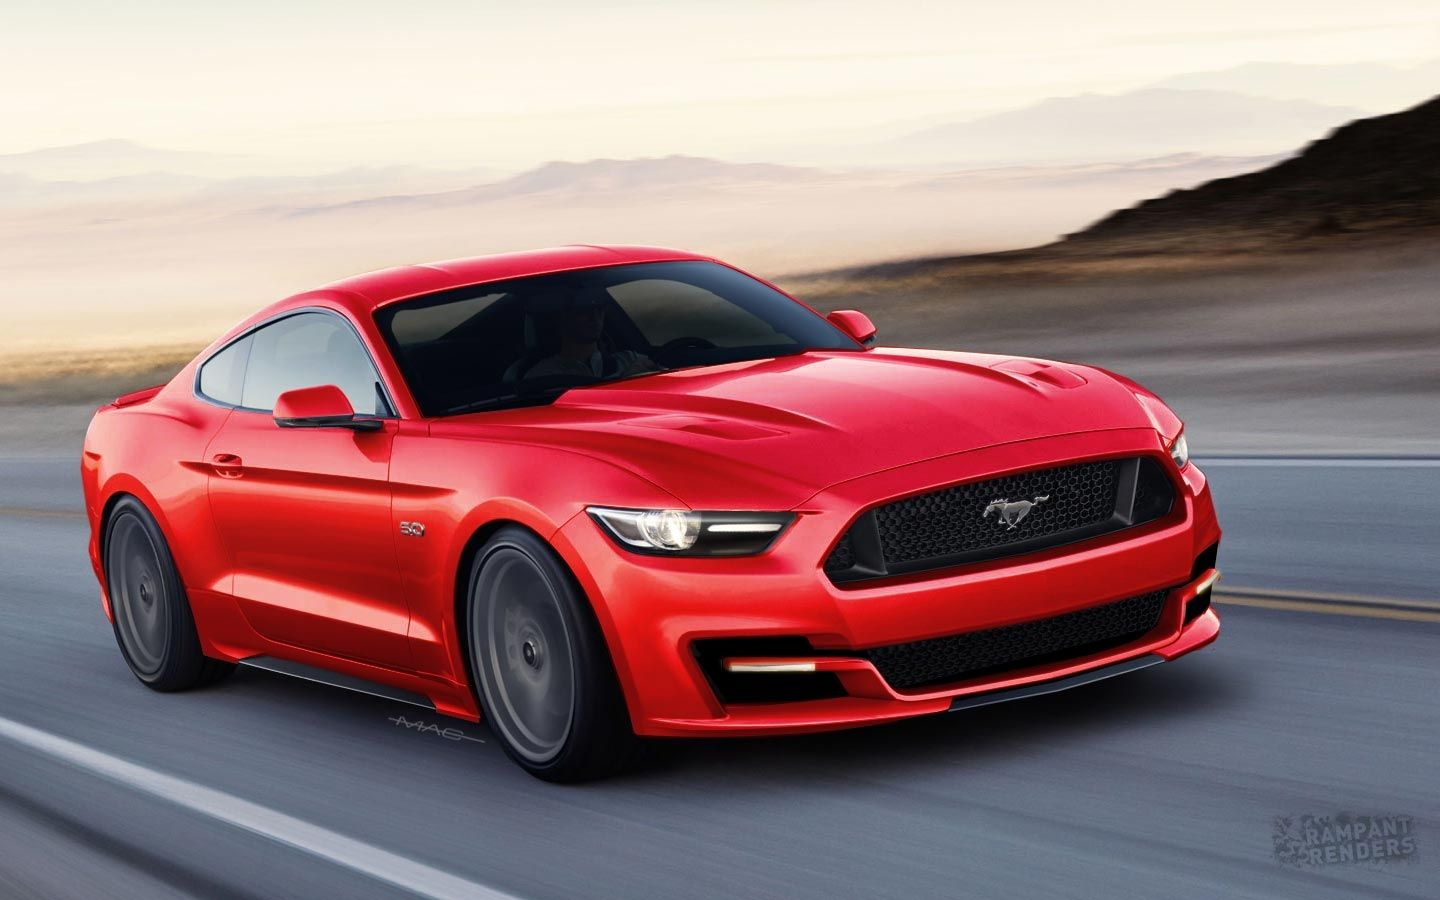 Ford Mustang 2015 Wallpapers 2015 Ford Mustang New Ford Mustang Ford Mustang